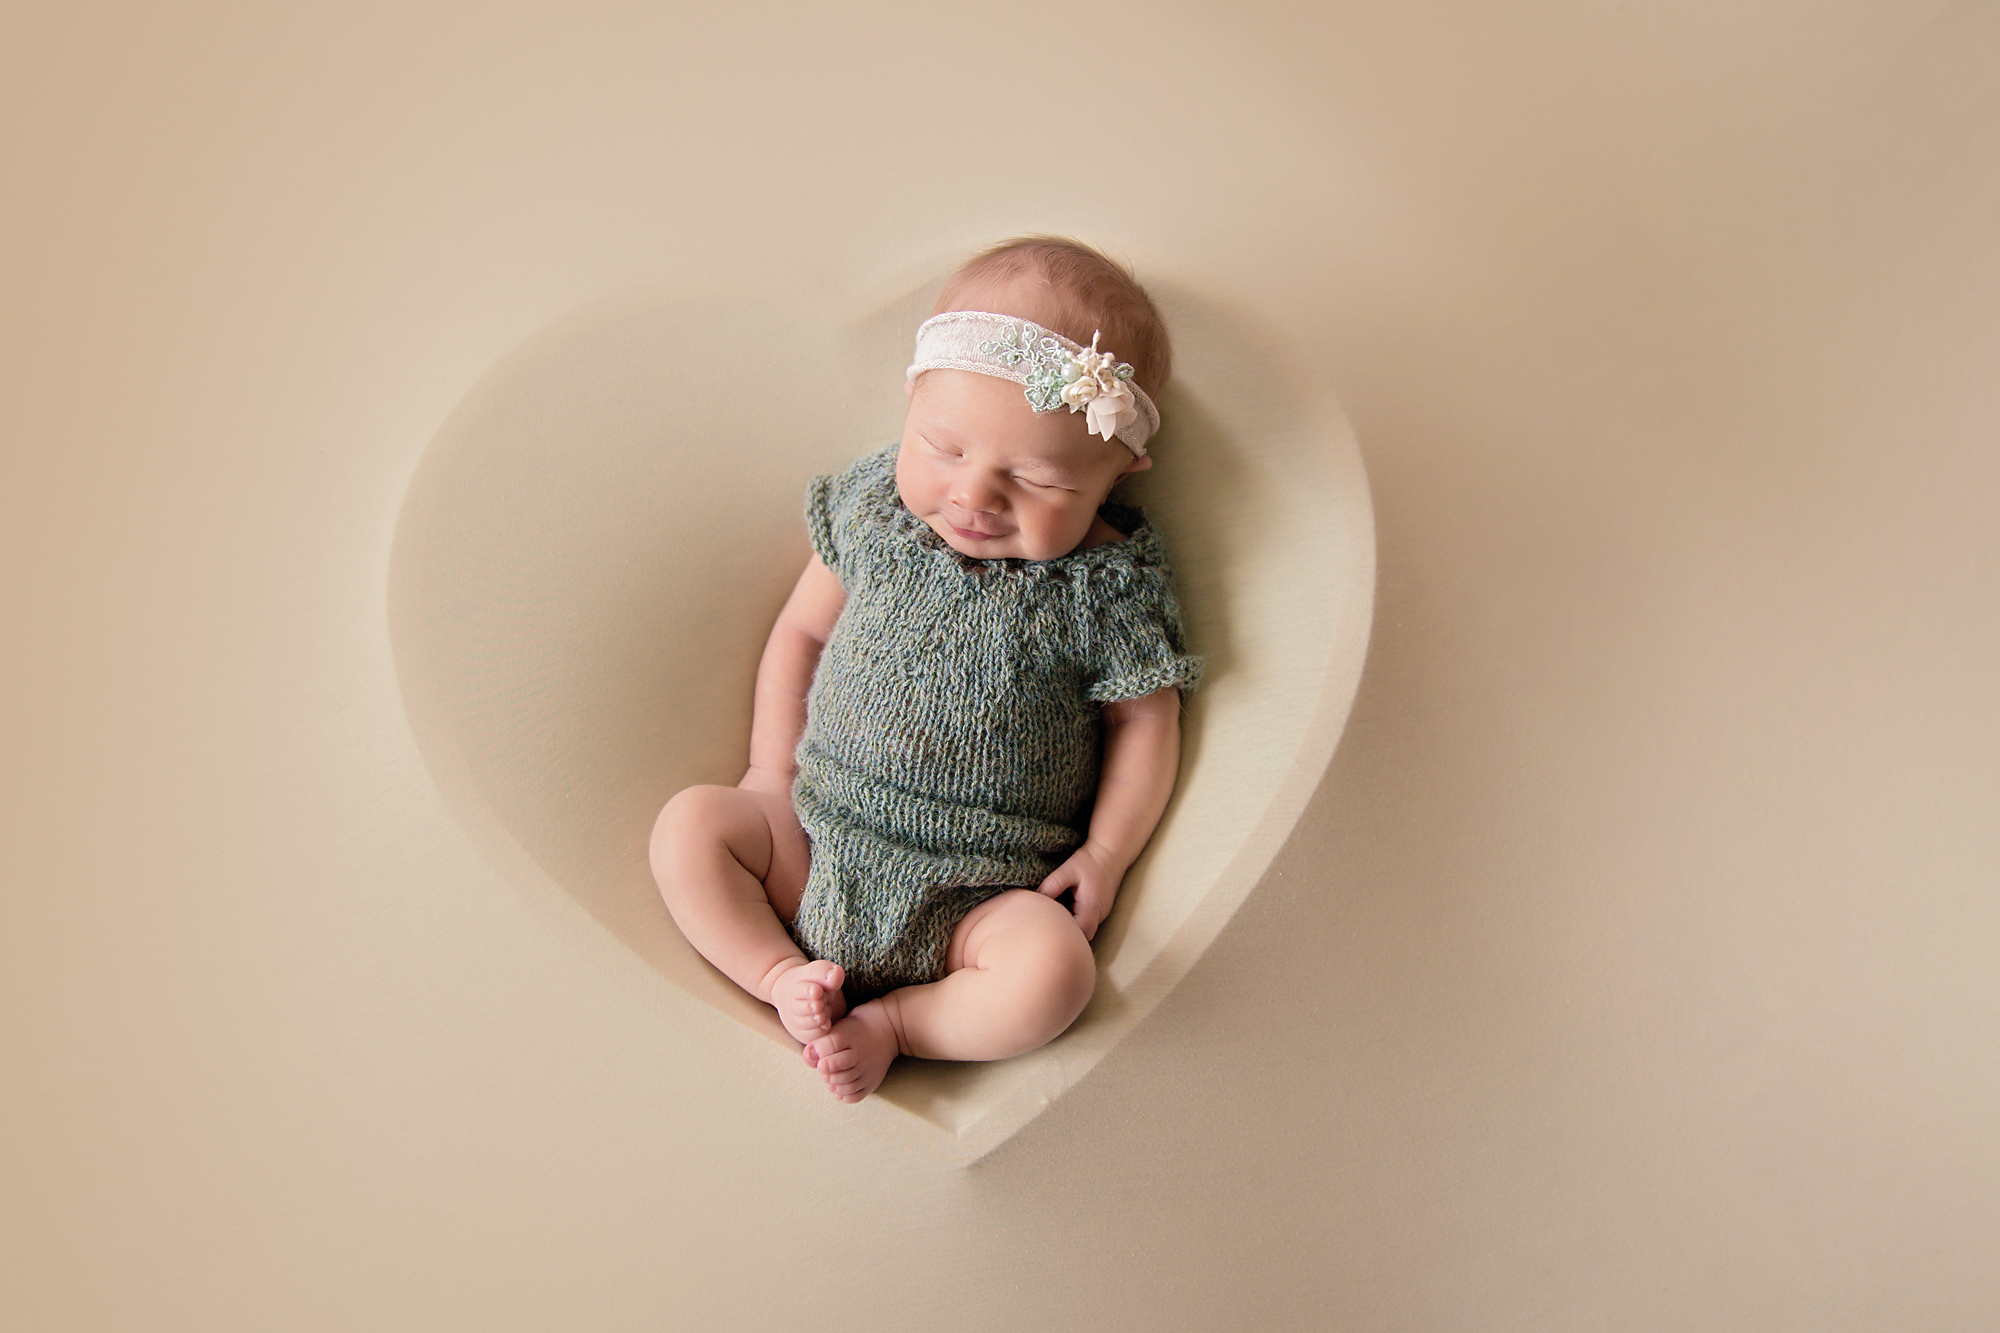 Newborn Photoshoot inspiration ideas. Calgary and Airdrie, Alberta Newborn and Baby photographer - Milashka Photography. Baby girl is posed in a heart bowl covered by a backdrop and is wearing a cute green outfit.